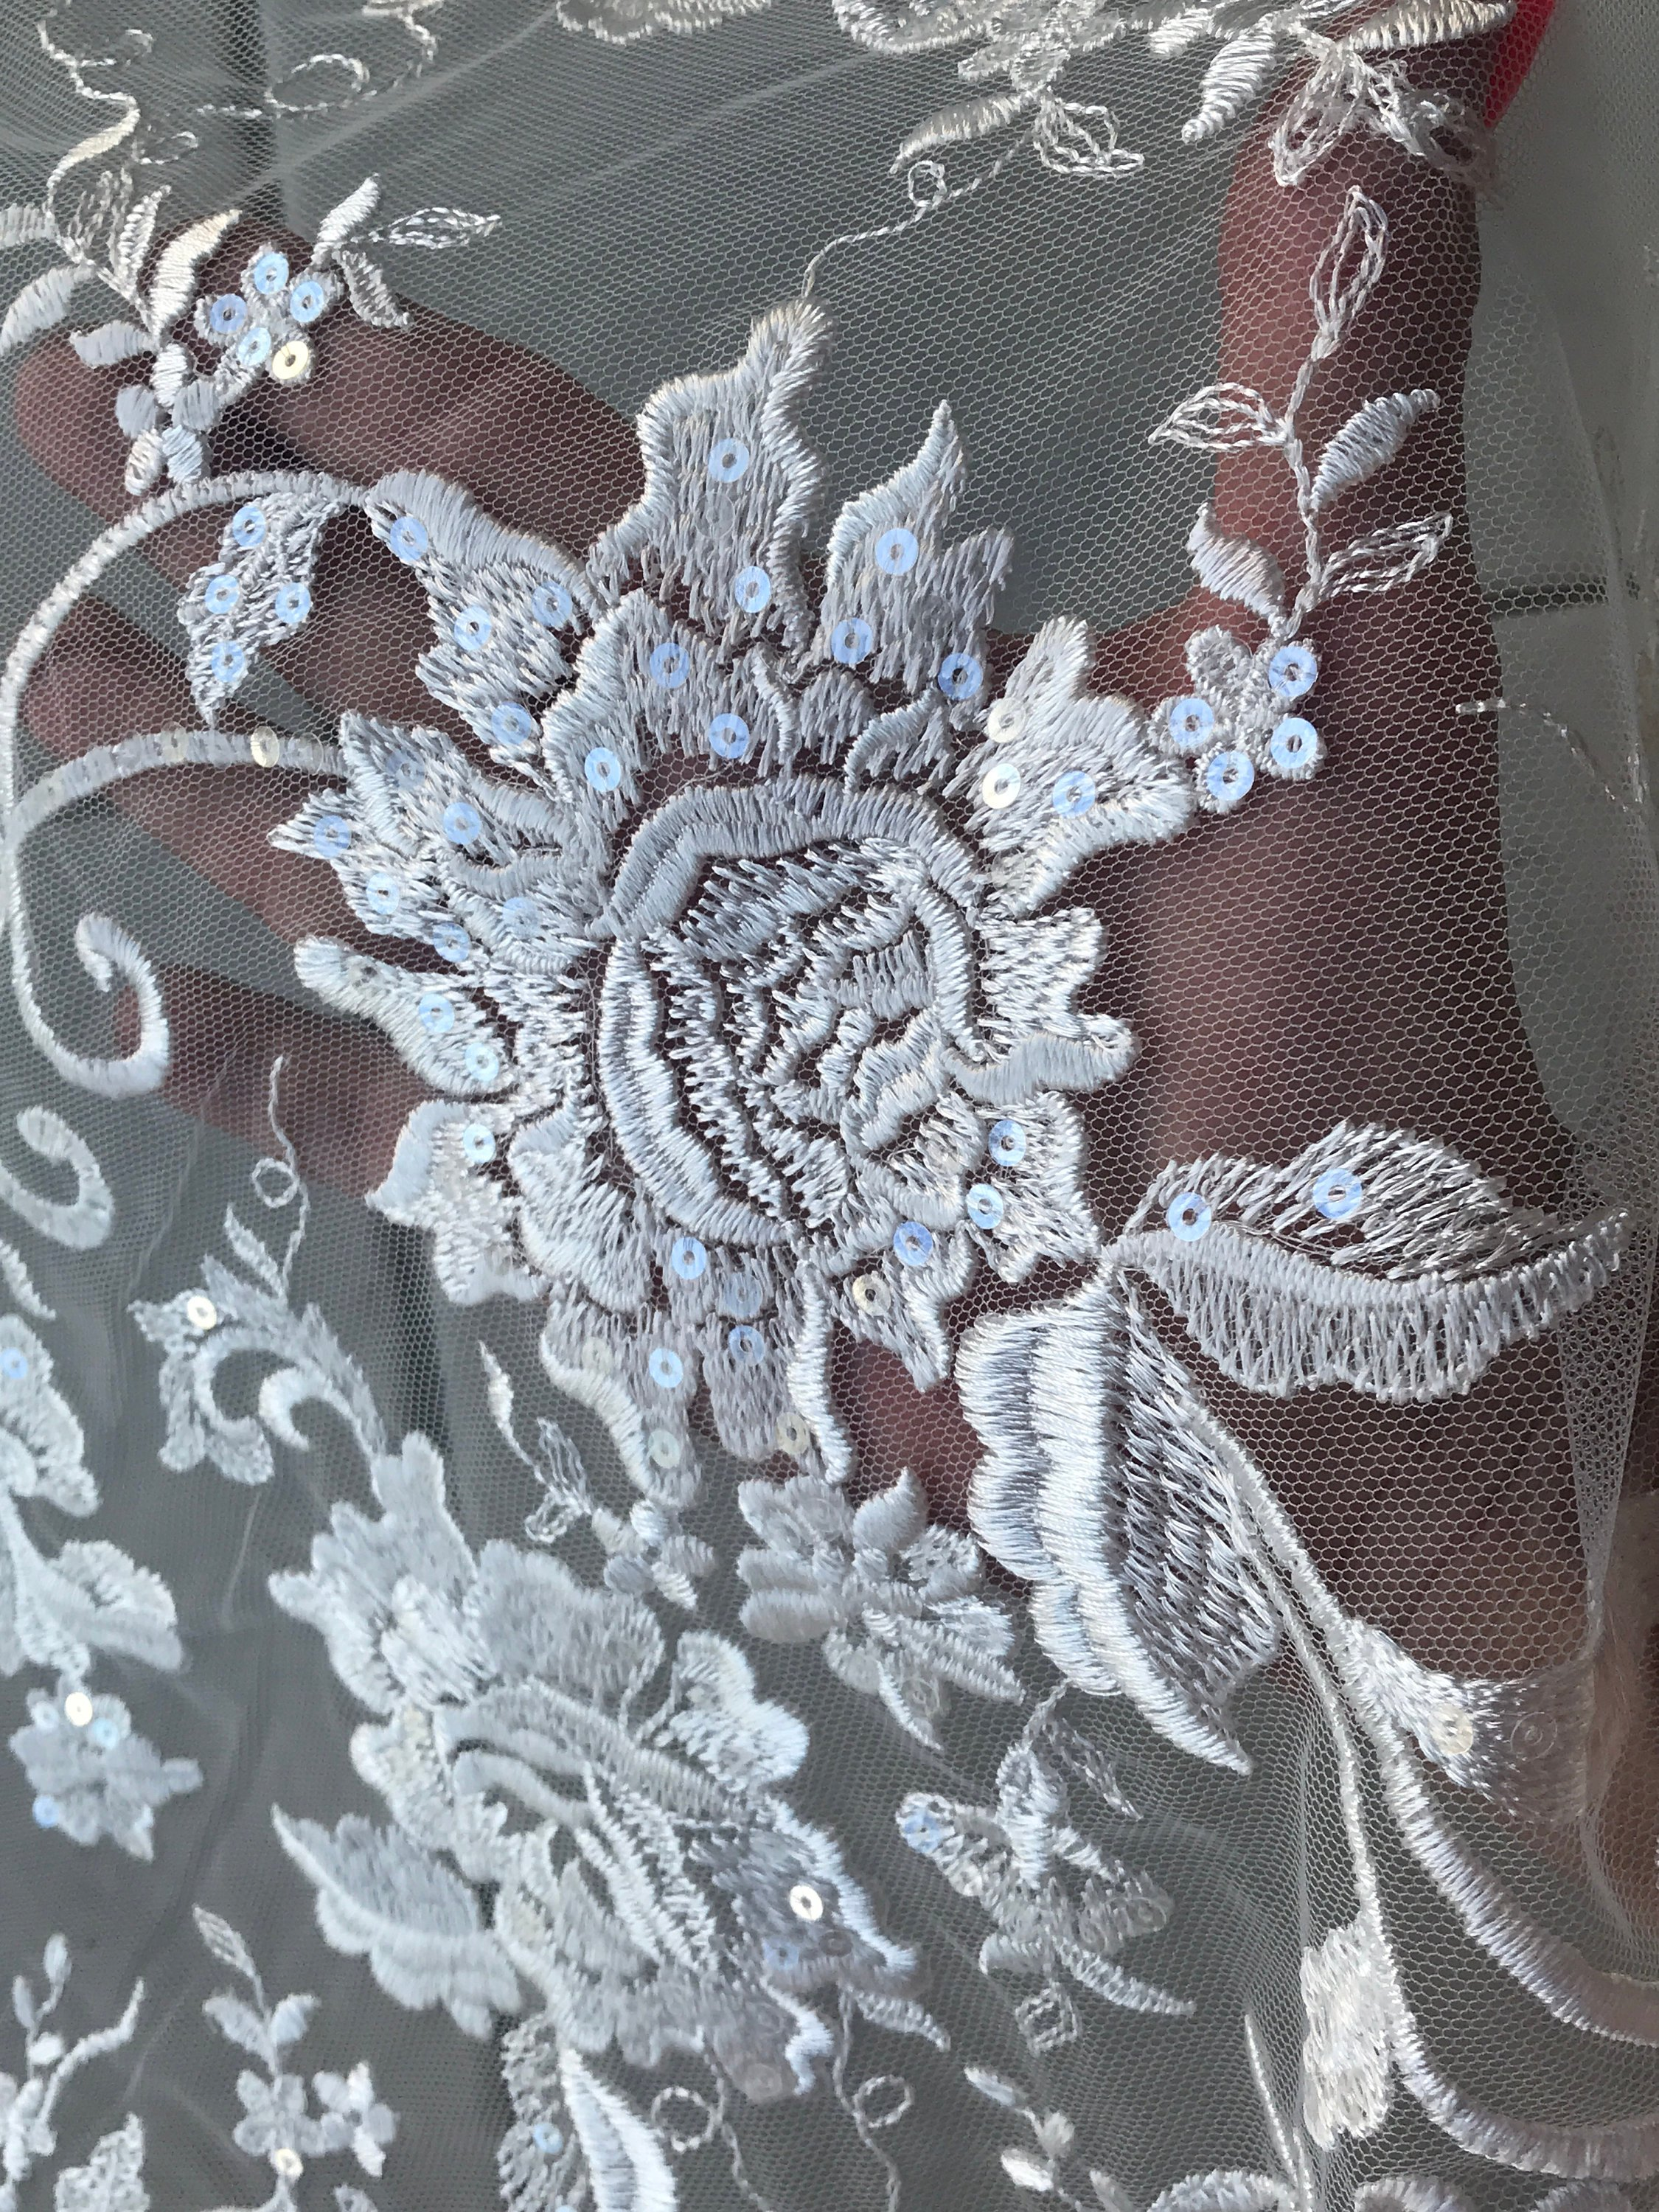 Off White Light Ivory bridal lace fabric corded with sequins floral  wedding dress lace